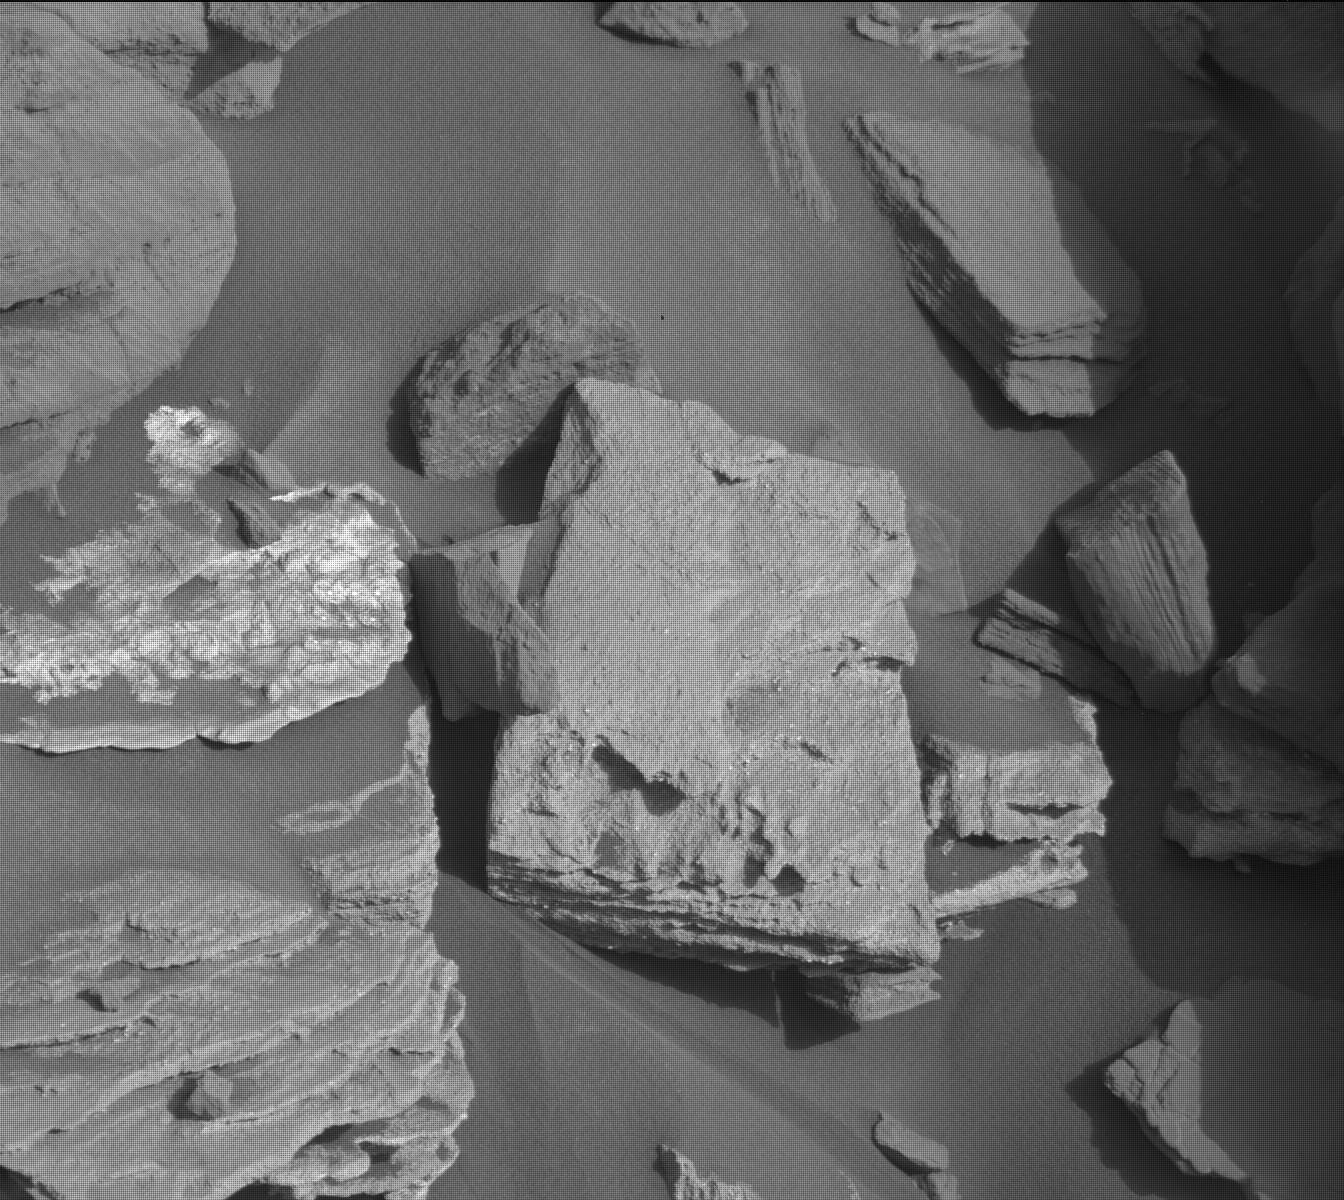 Nasa's Mars rover Curiosity acquired this image using its Mast Camera (Mastcam) on Sol 1065